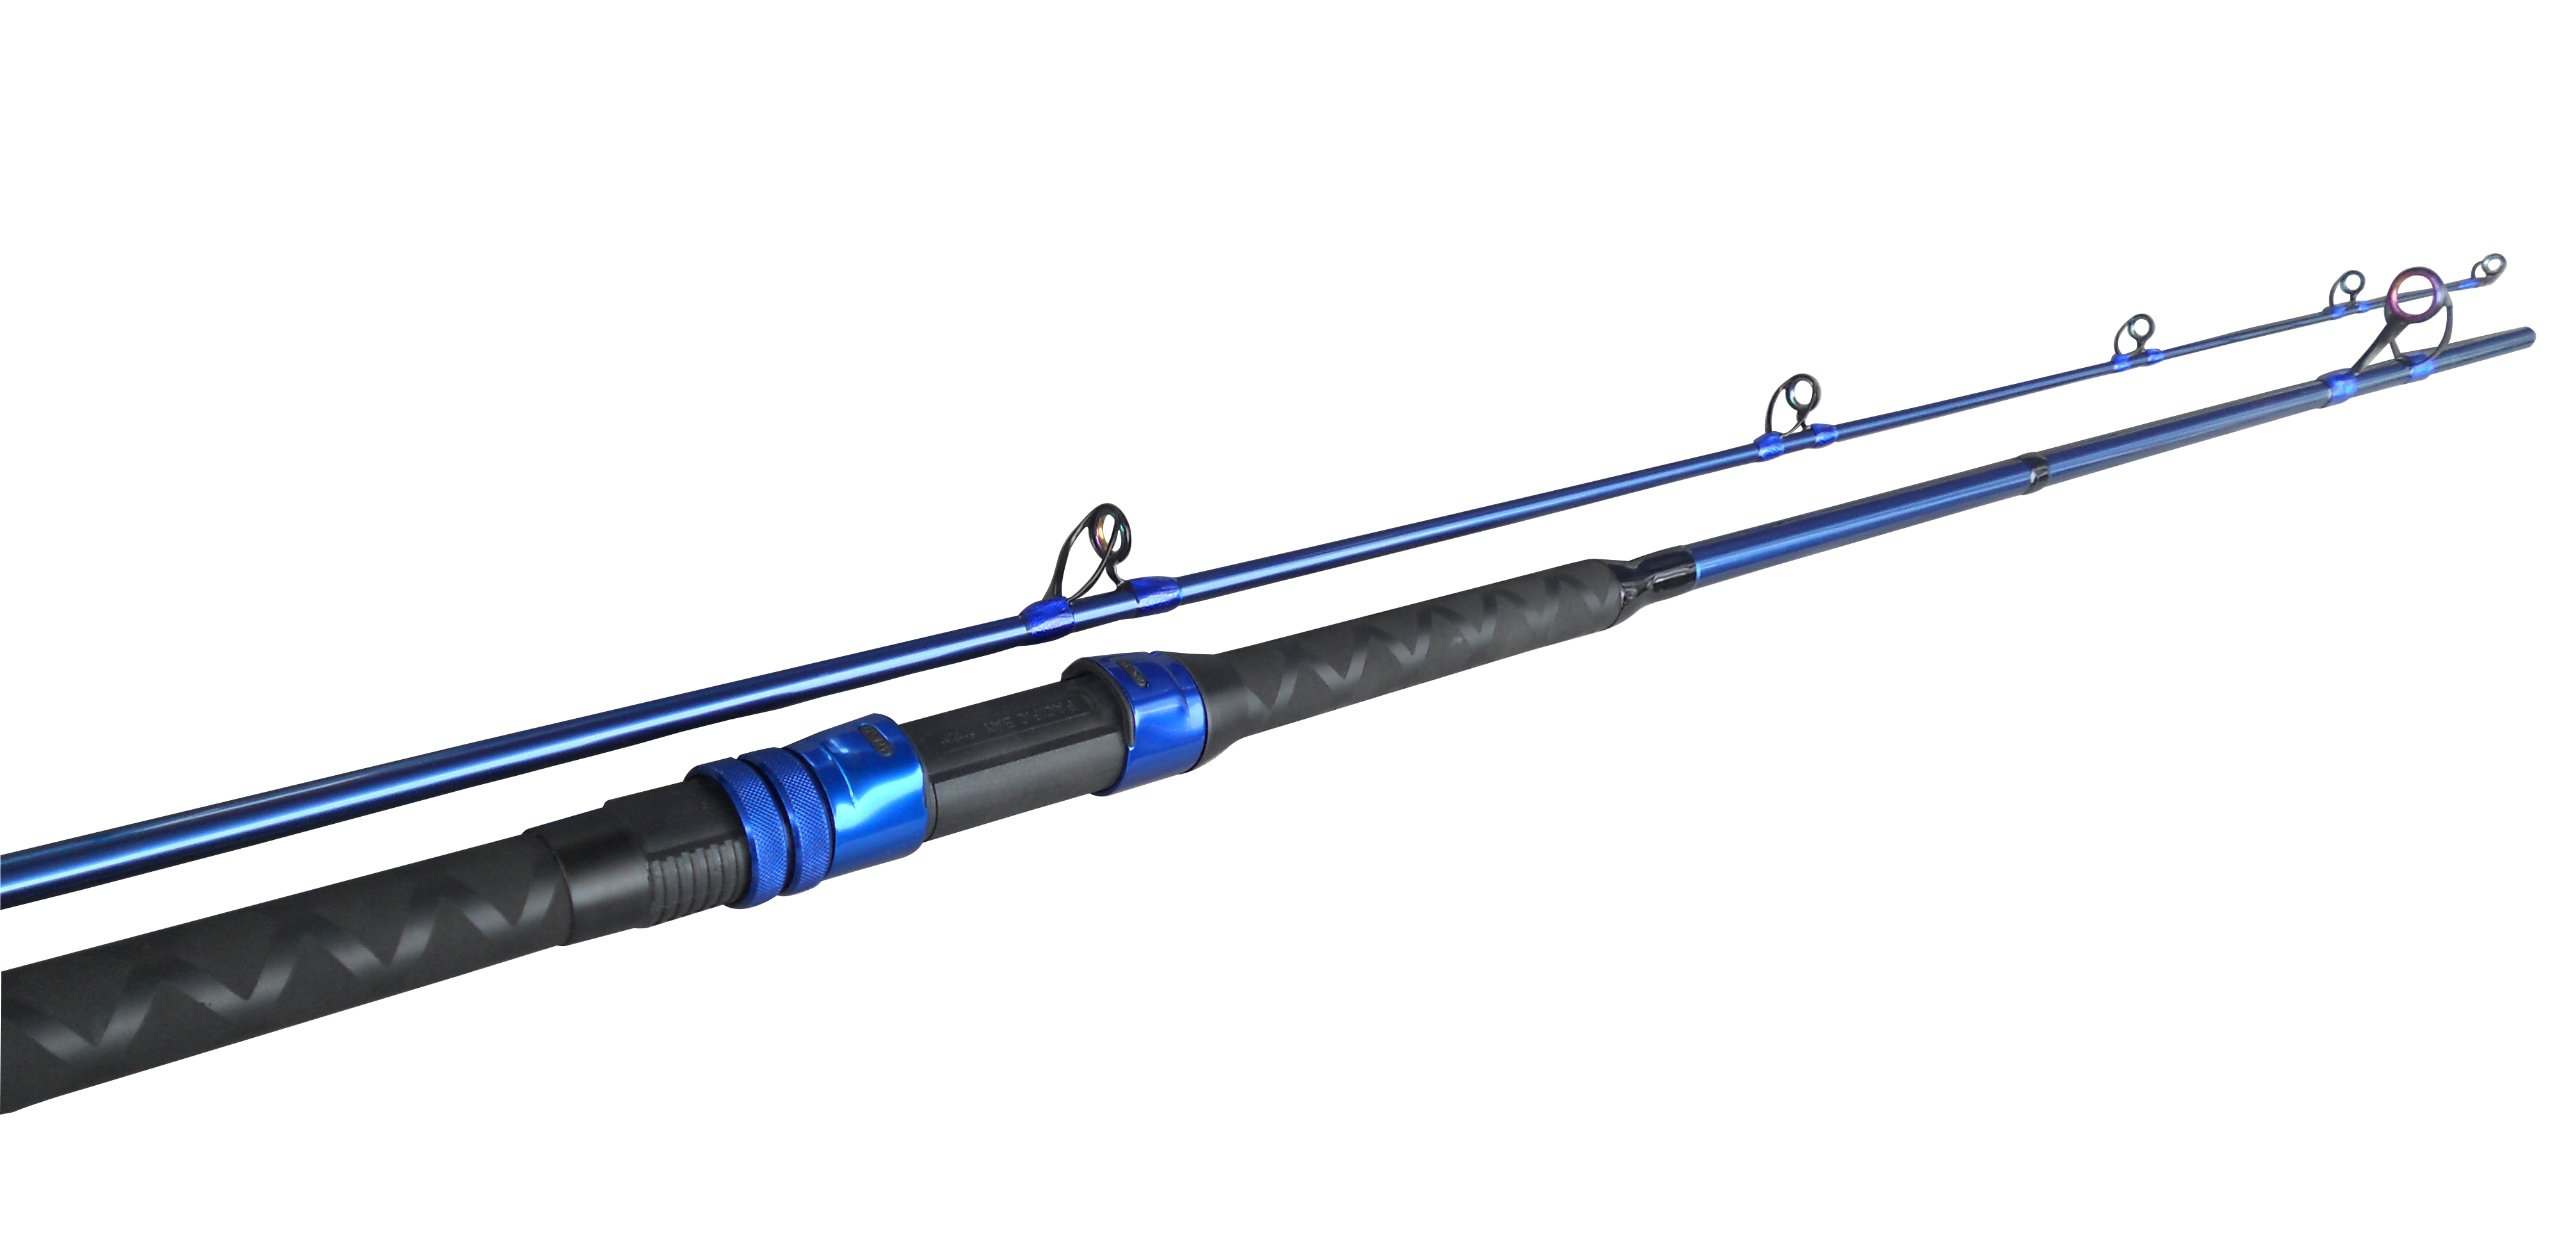 Okuma Fishing Tackle CSX-S-1102MH Cedros Surf CSX Graphite Saltwater Spinning Rods by Okuma